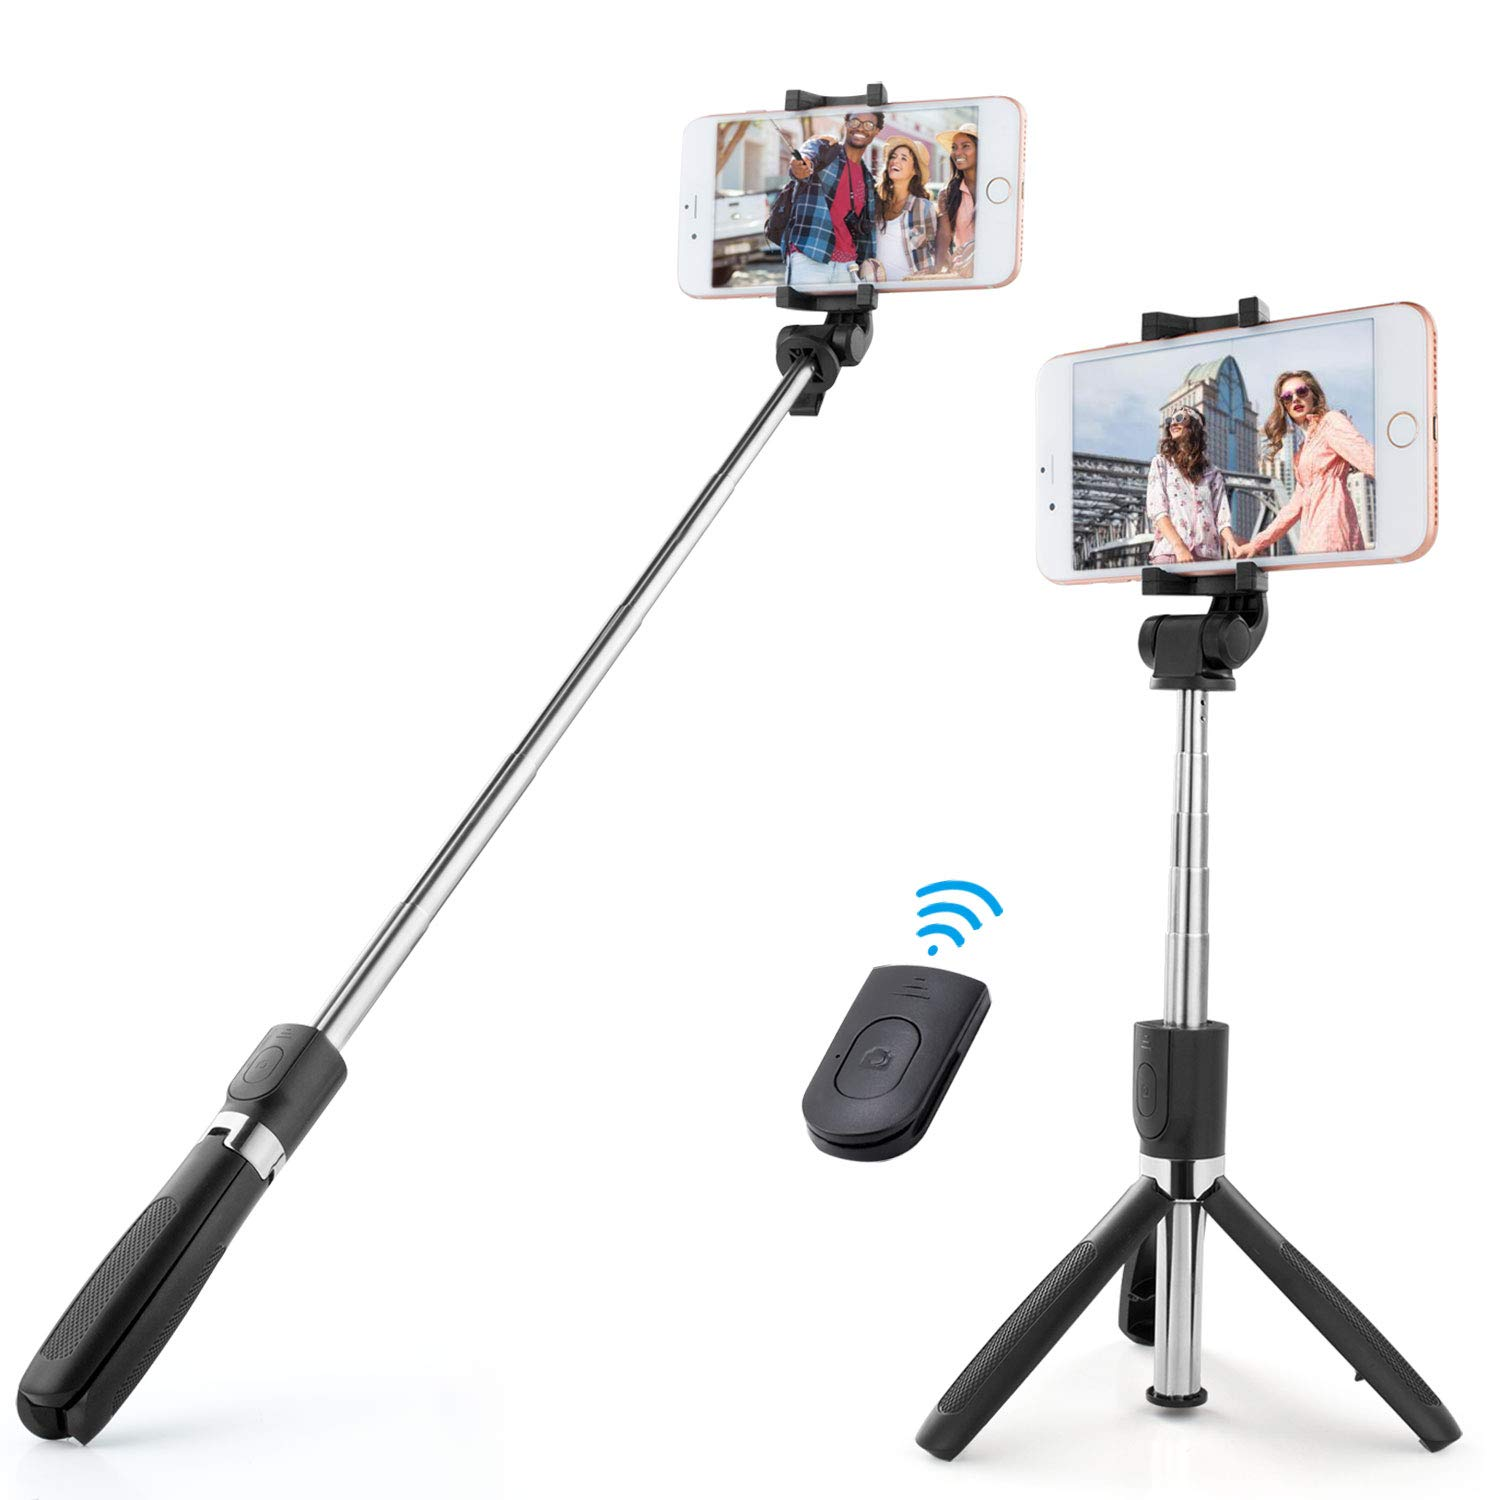 Selfie Stick,RVZHI Extendable Wireless with Bluetooth Remote Tripod Stand Holder for Phone x 8 6 7 Plus Android Samsung Galaxy S7 S8 BlackBerry Huawei/More (Black)